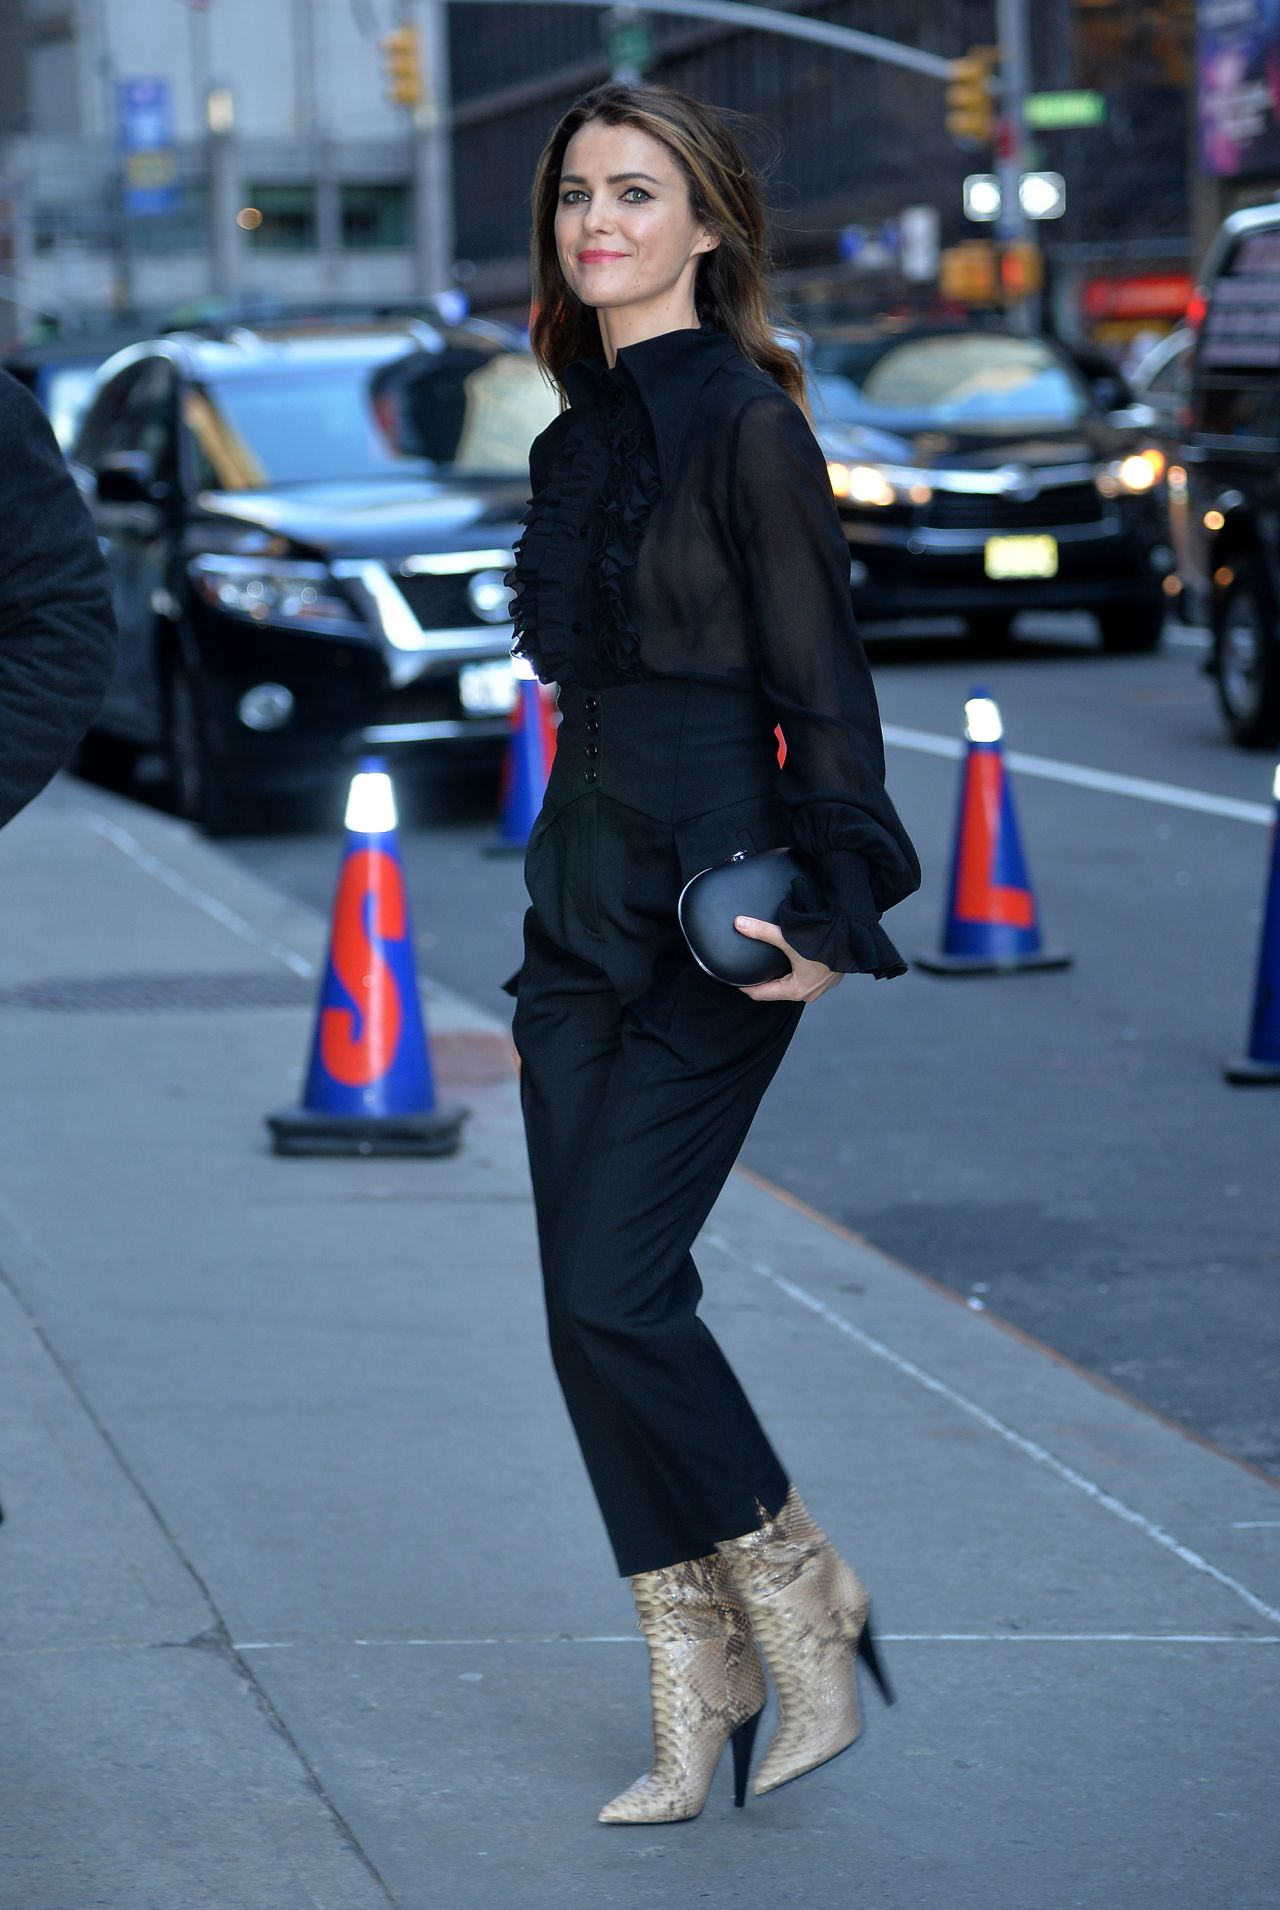 Keri Russell looking gorgeous while headed to The Late Show in NYC